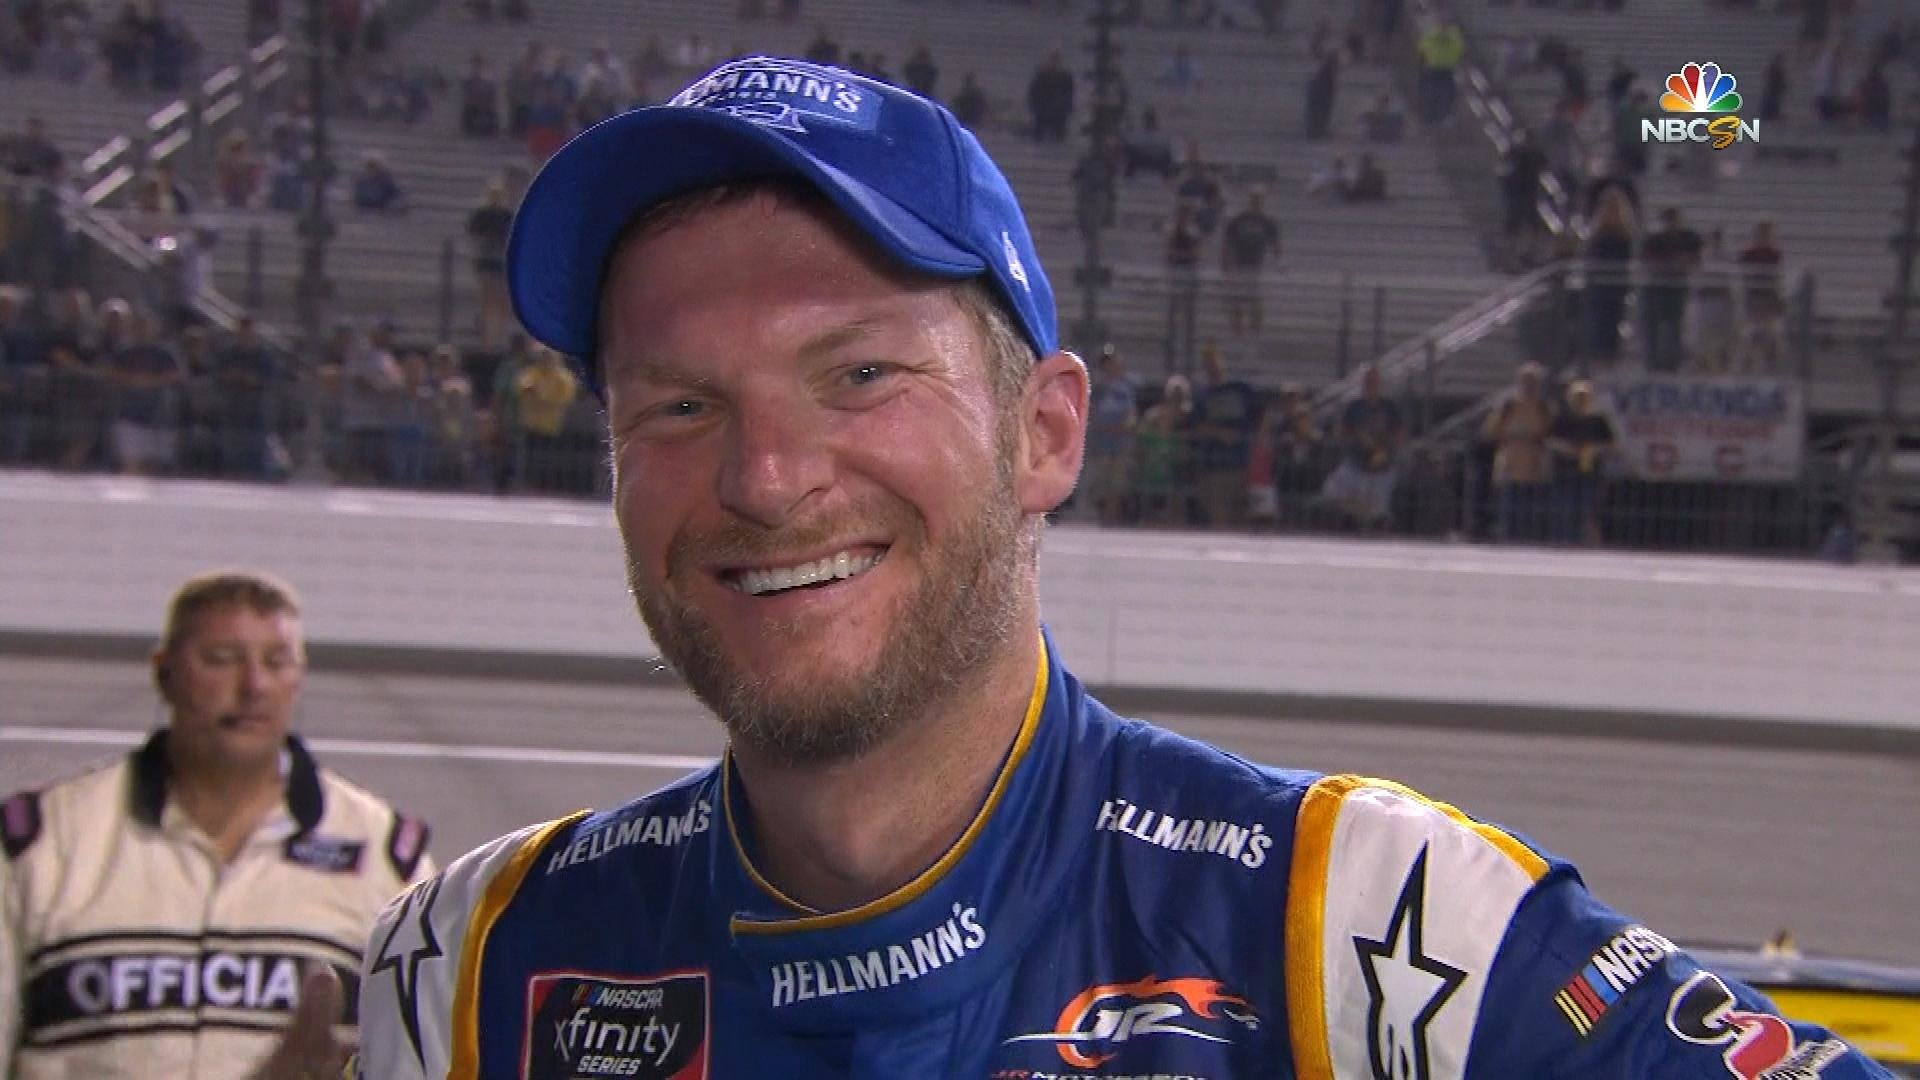 0affb6f23836c1 Dale Earnhardt Jr. leads most laps in Xfinity Series race at Richmond